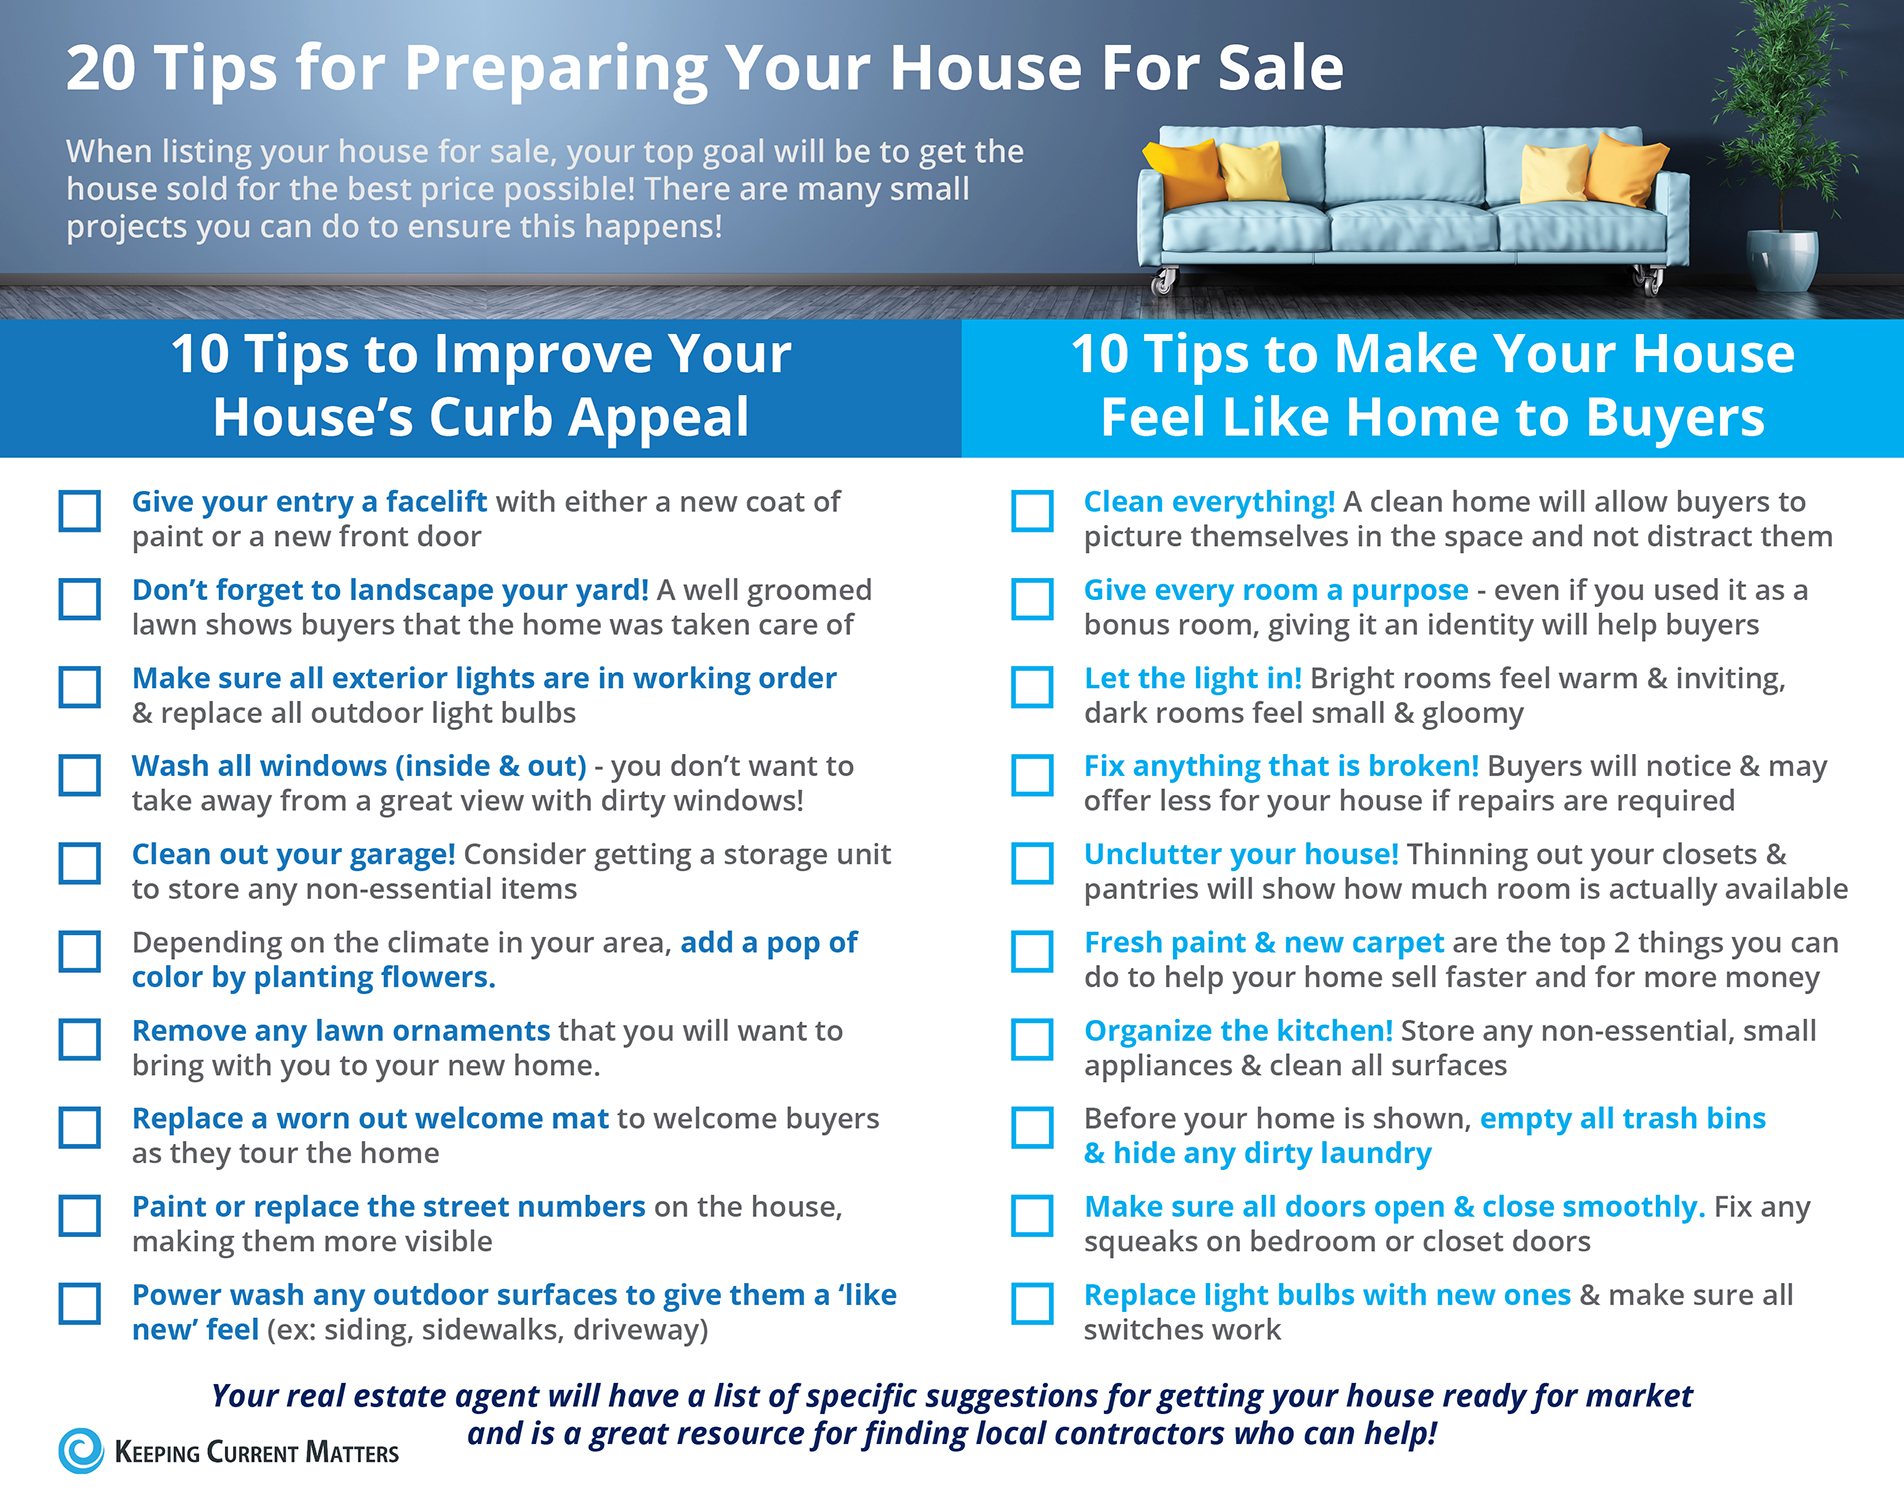 20 Tips Preparing Your Home for Sale